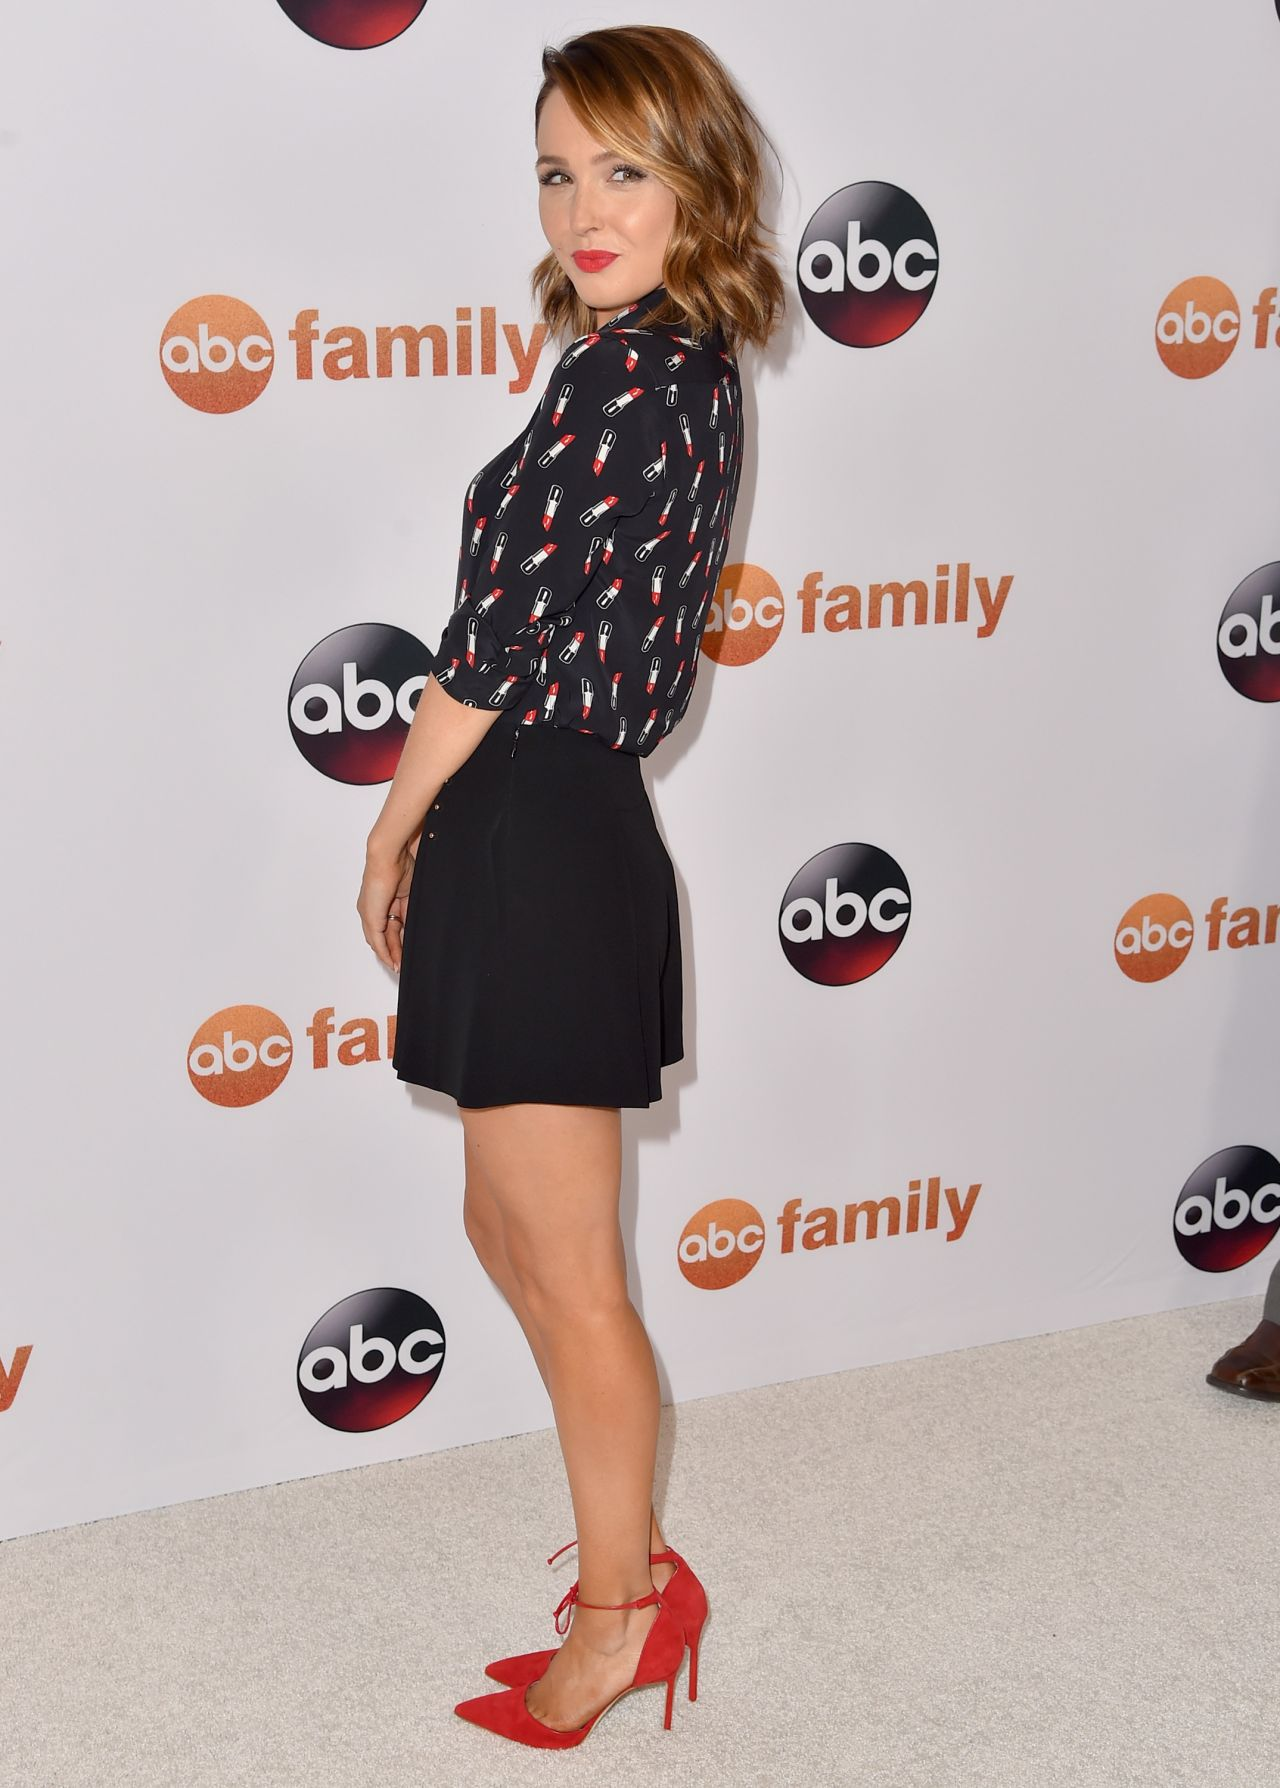 camilla-luddington-disney-abc-2015-summer-tca-press-tour-photo-call-in-beverly-hills_1